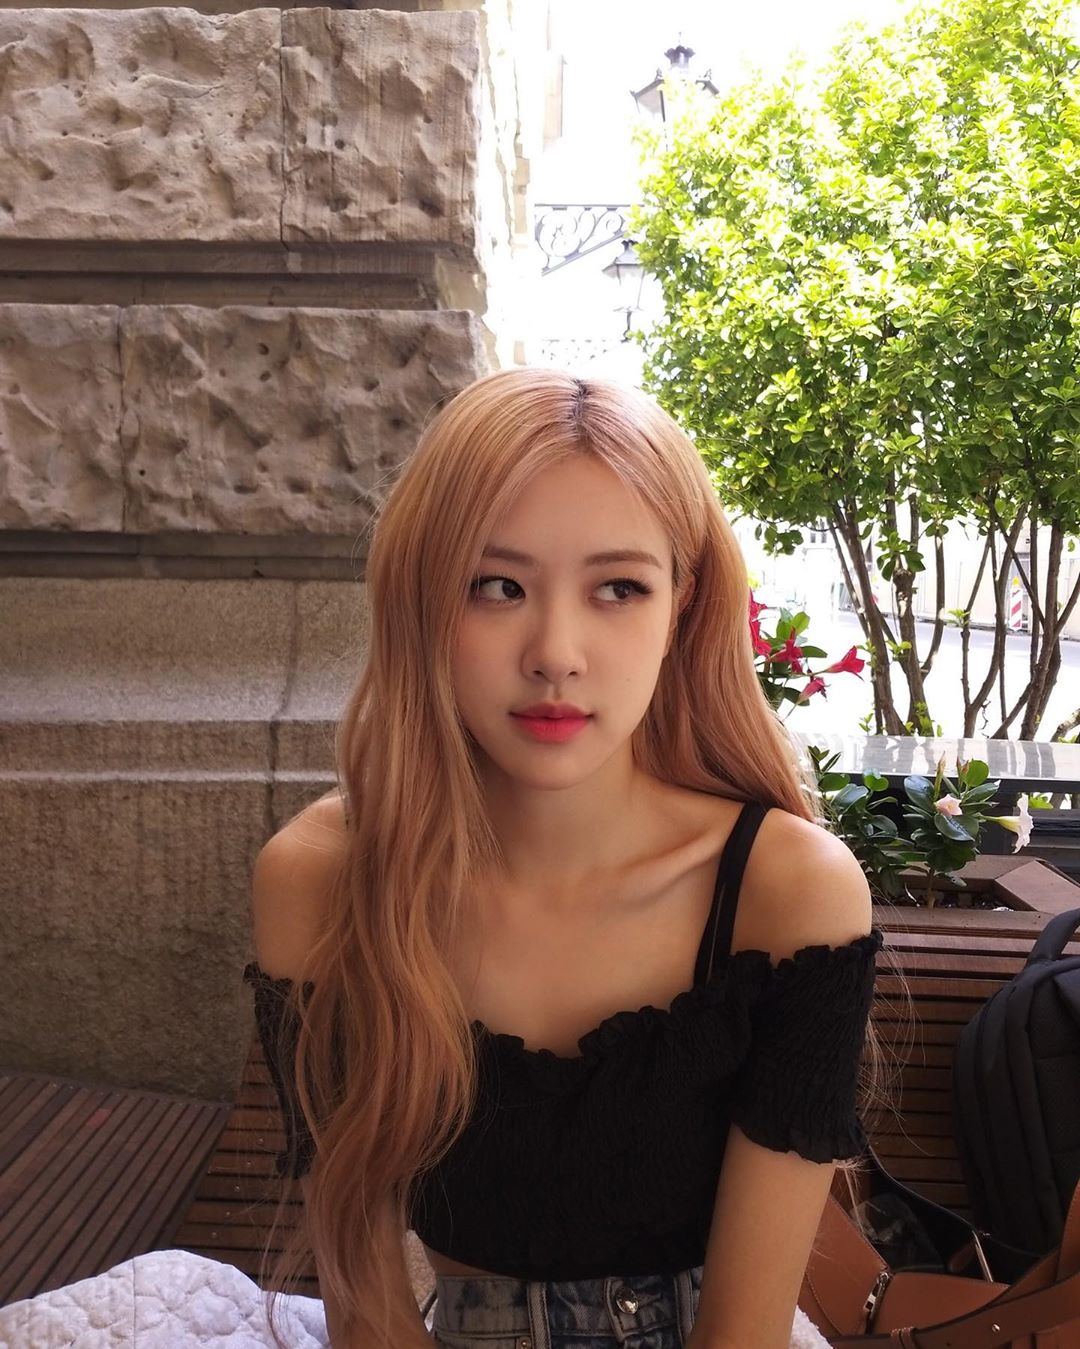 BLACKPINK Rosé Instagram and Insta Story Update, May 25, 2019